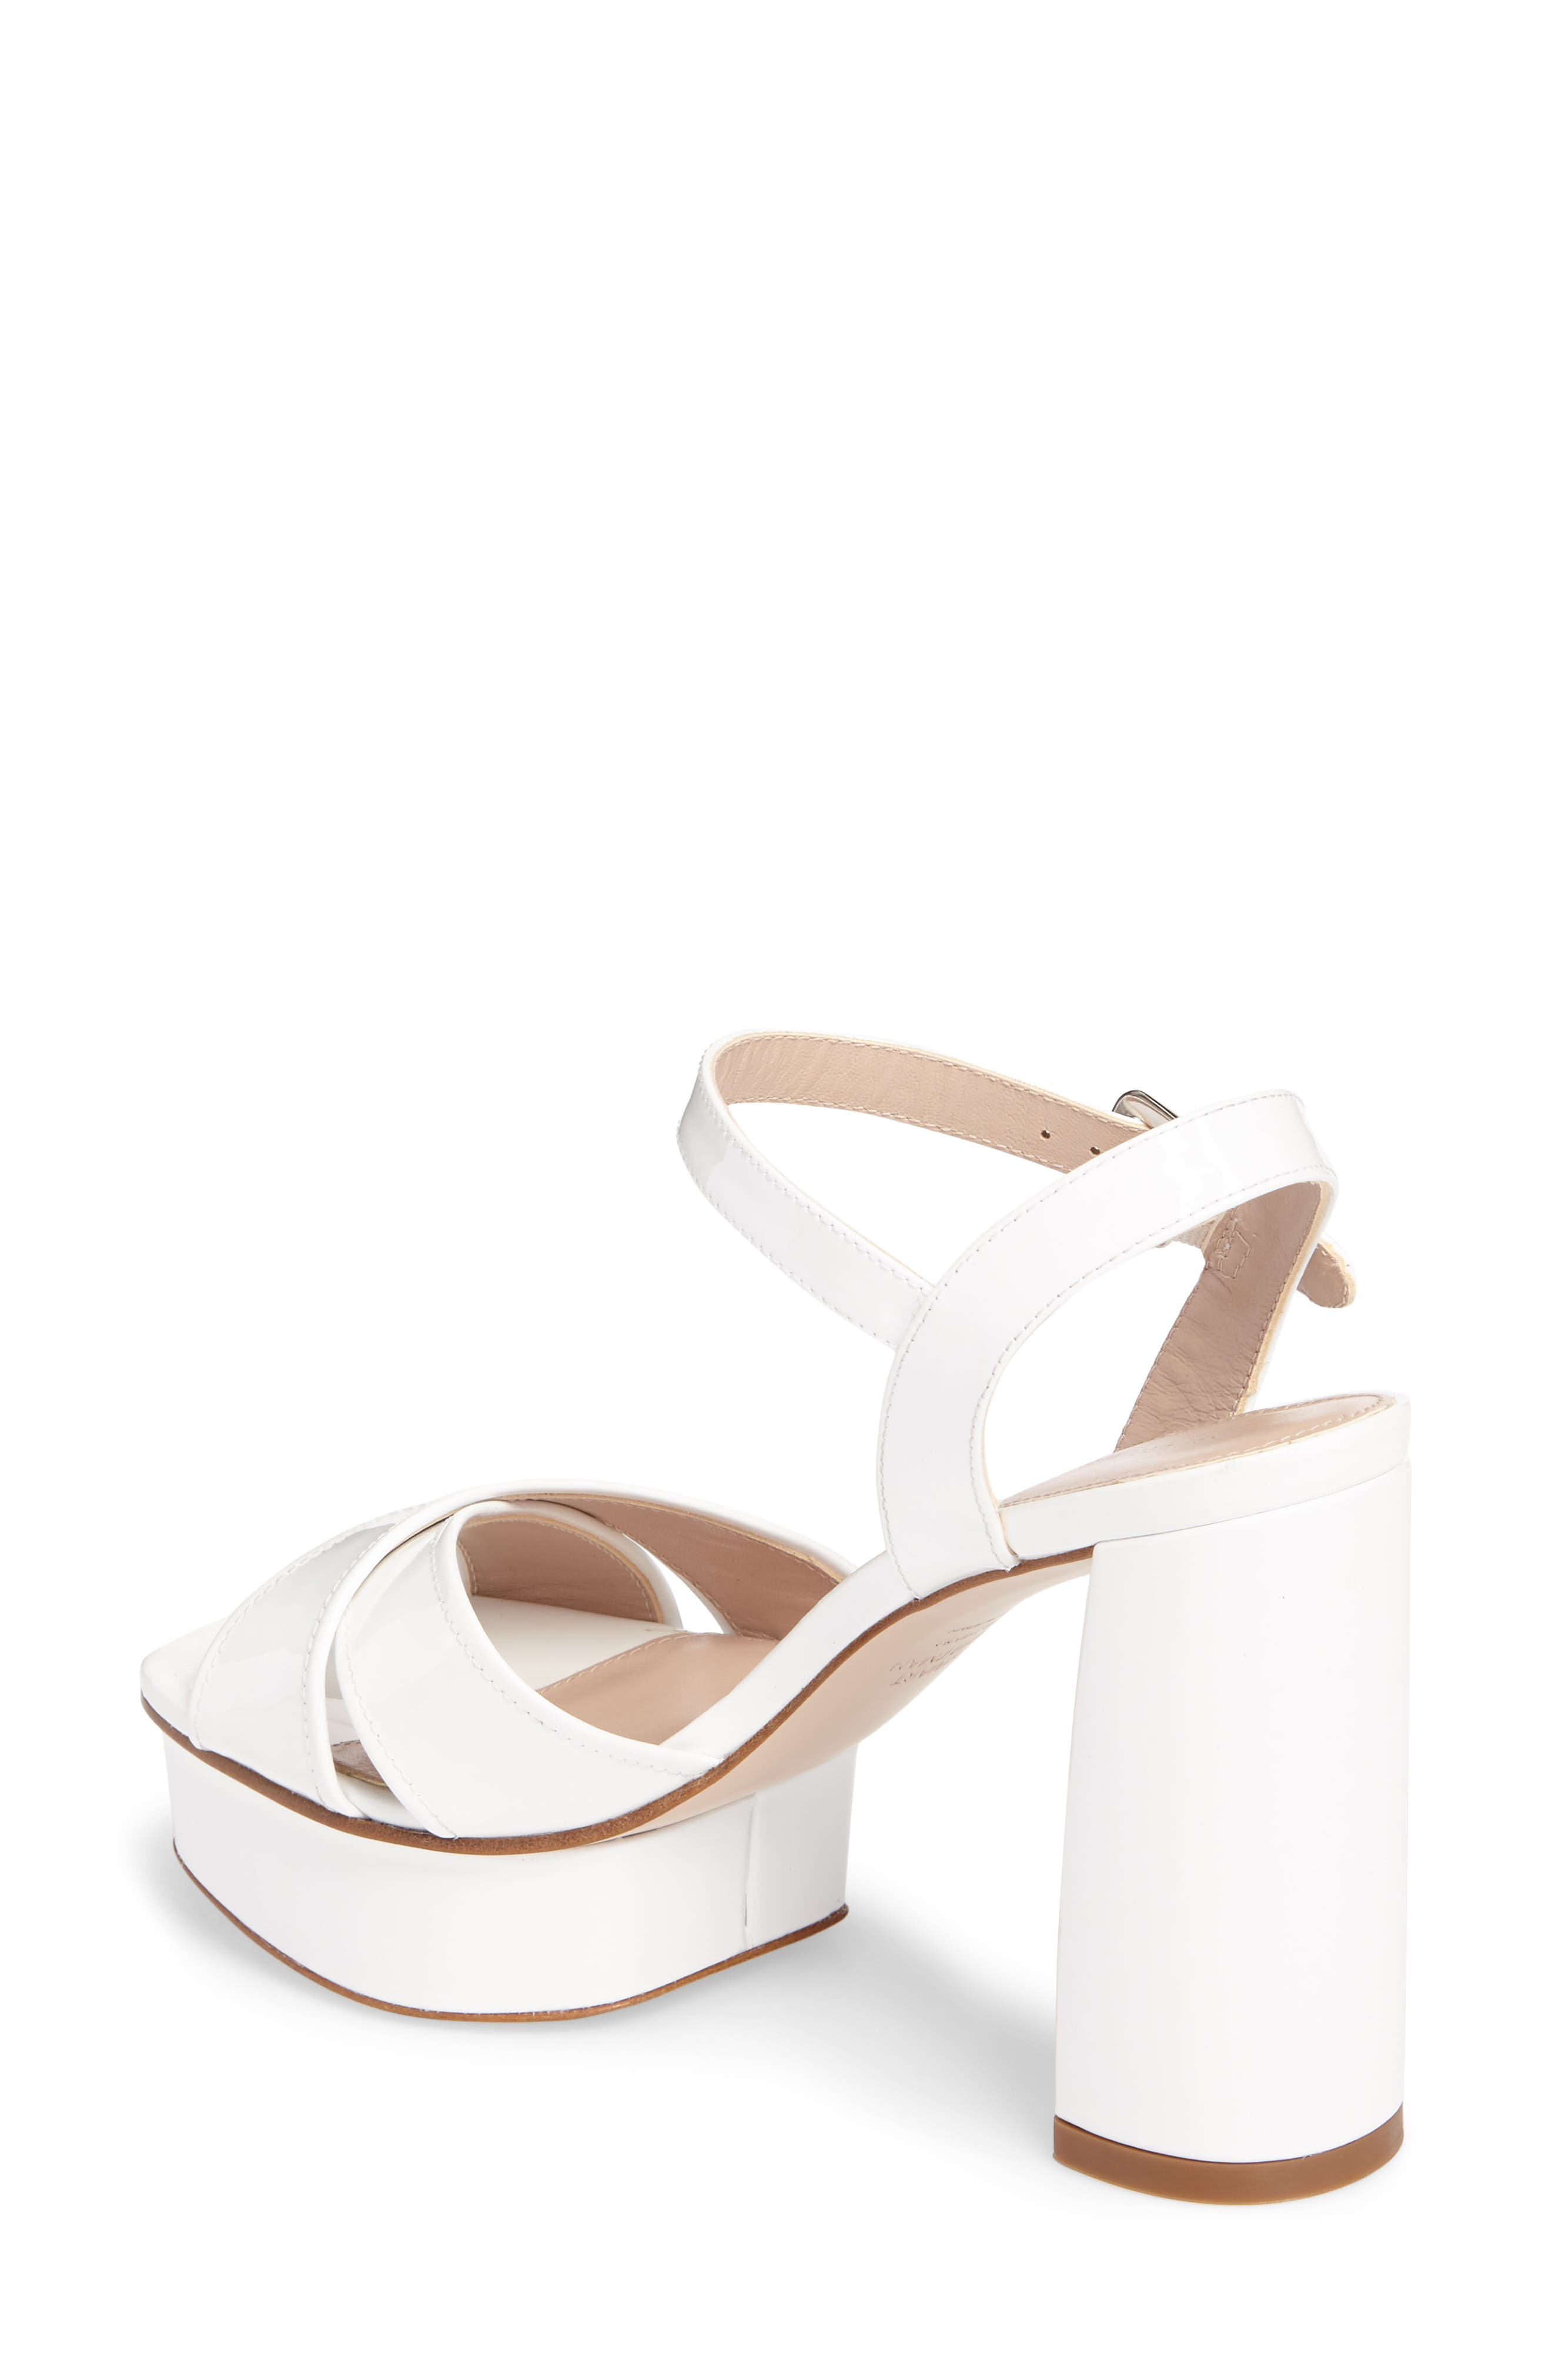 Exposed Platform Sandal,                             Alternate thumbnail 7, color,